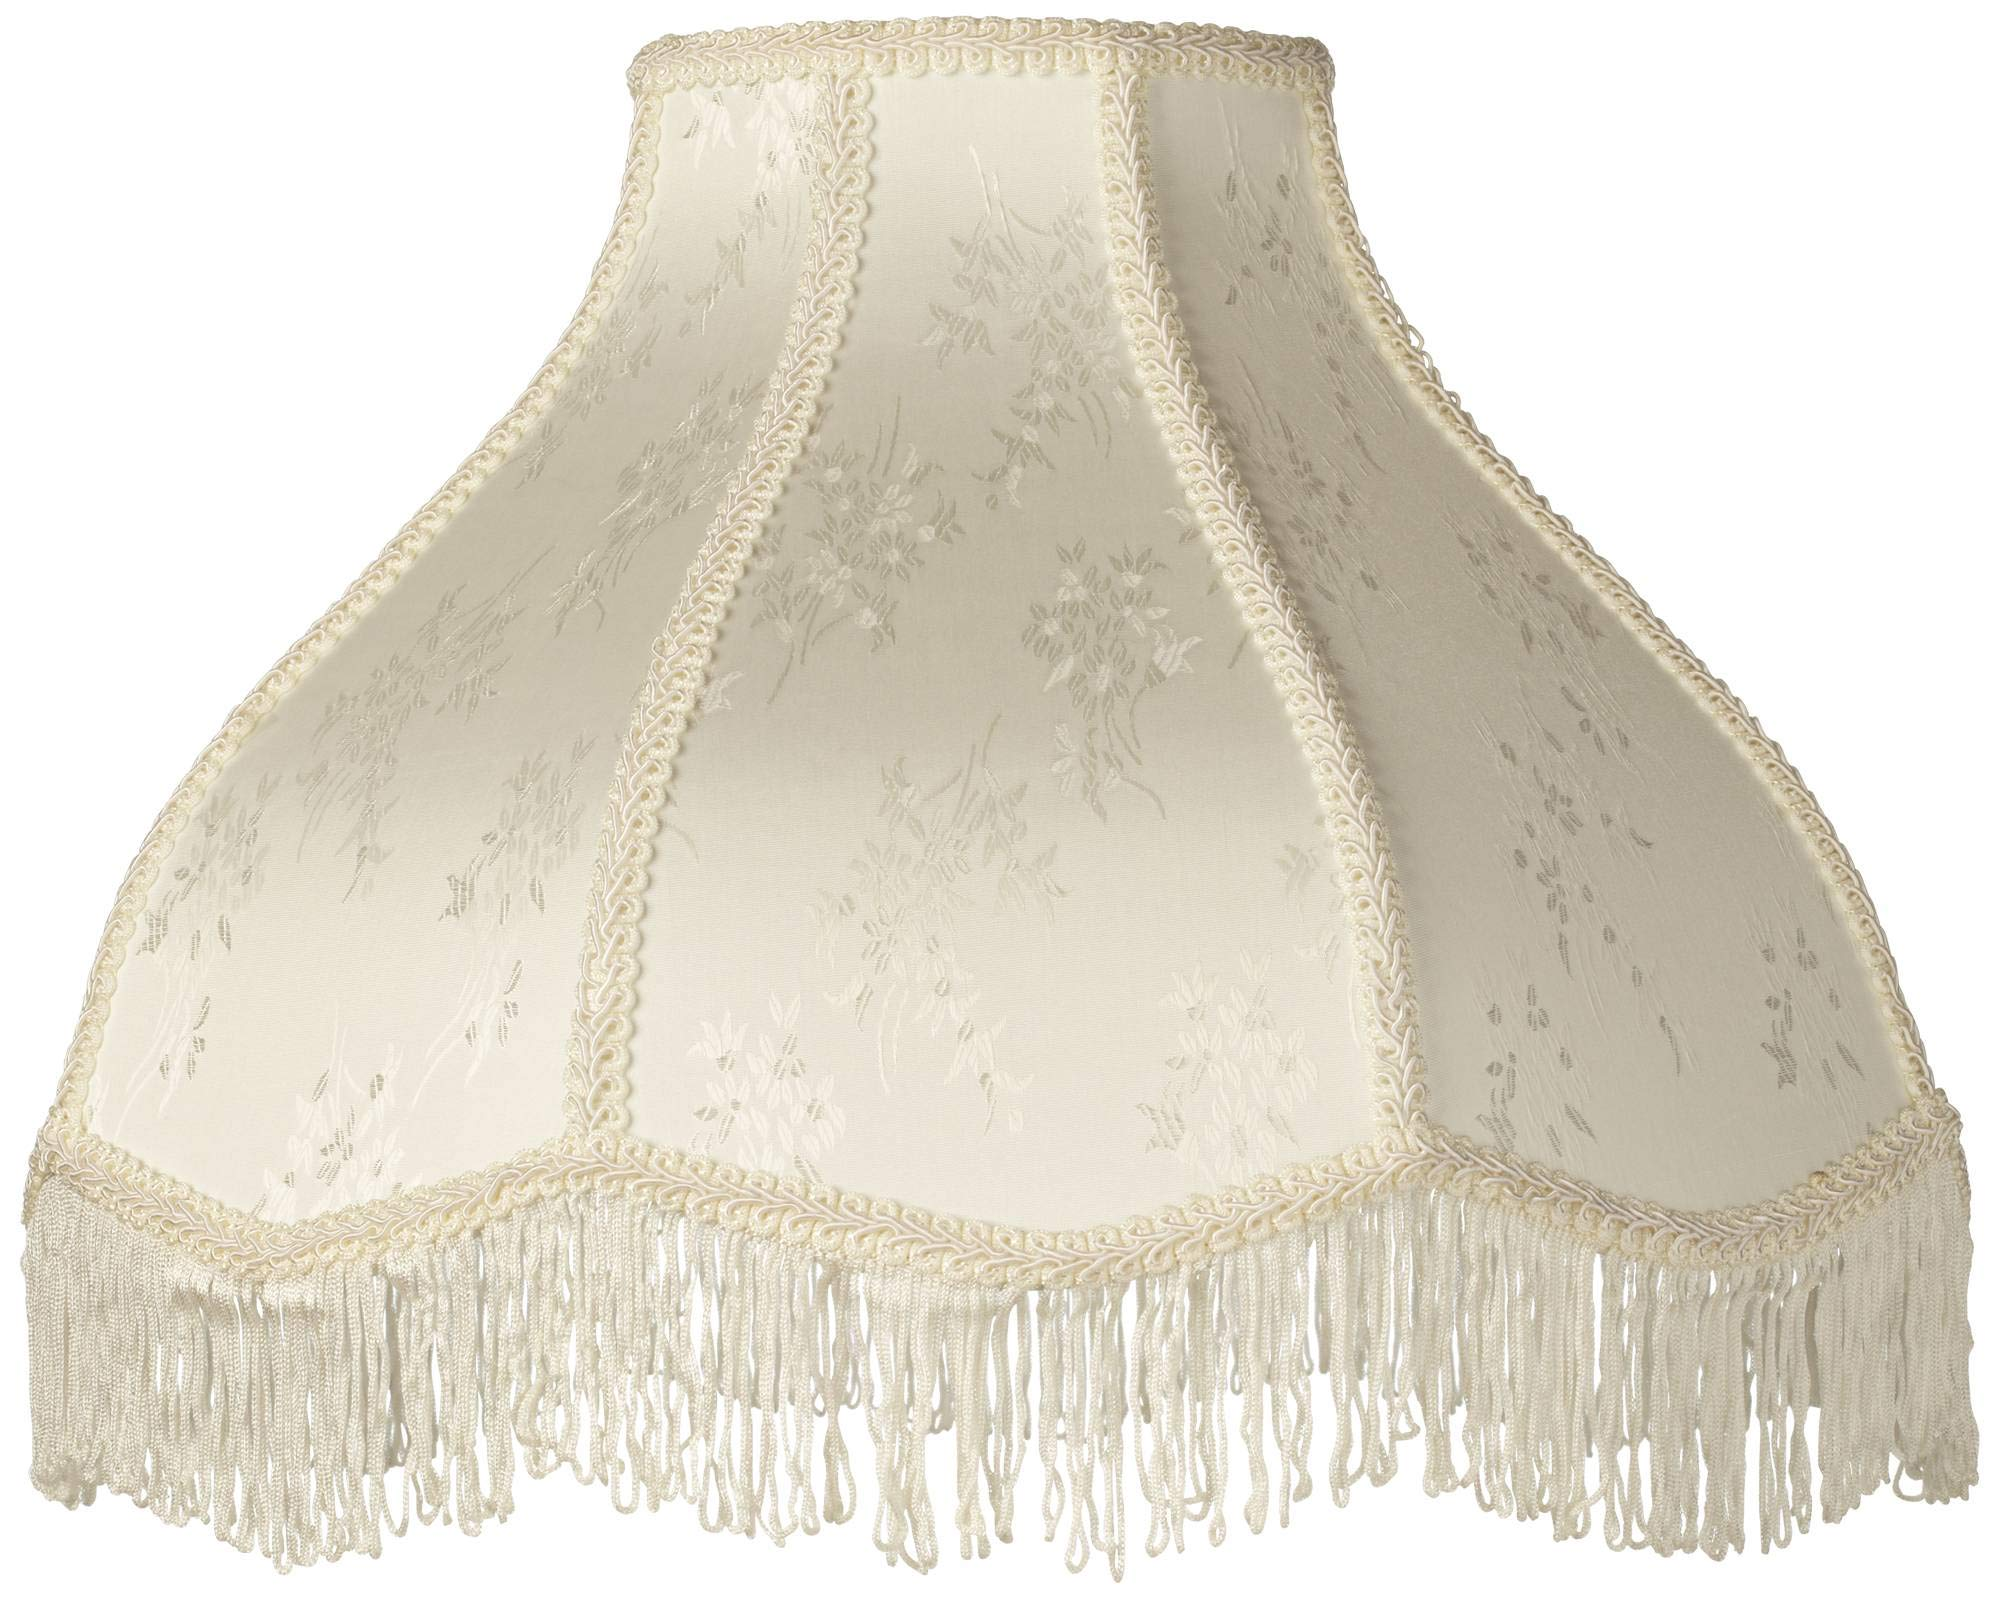 Creme Scallop Lamp Shade Fringe Harp Included 6x17x12x11 (Spider) - Brentwood by Brentwood